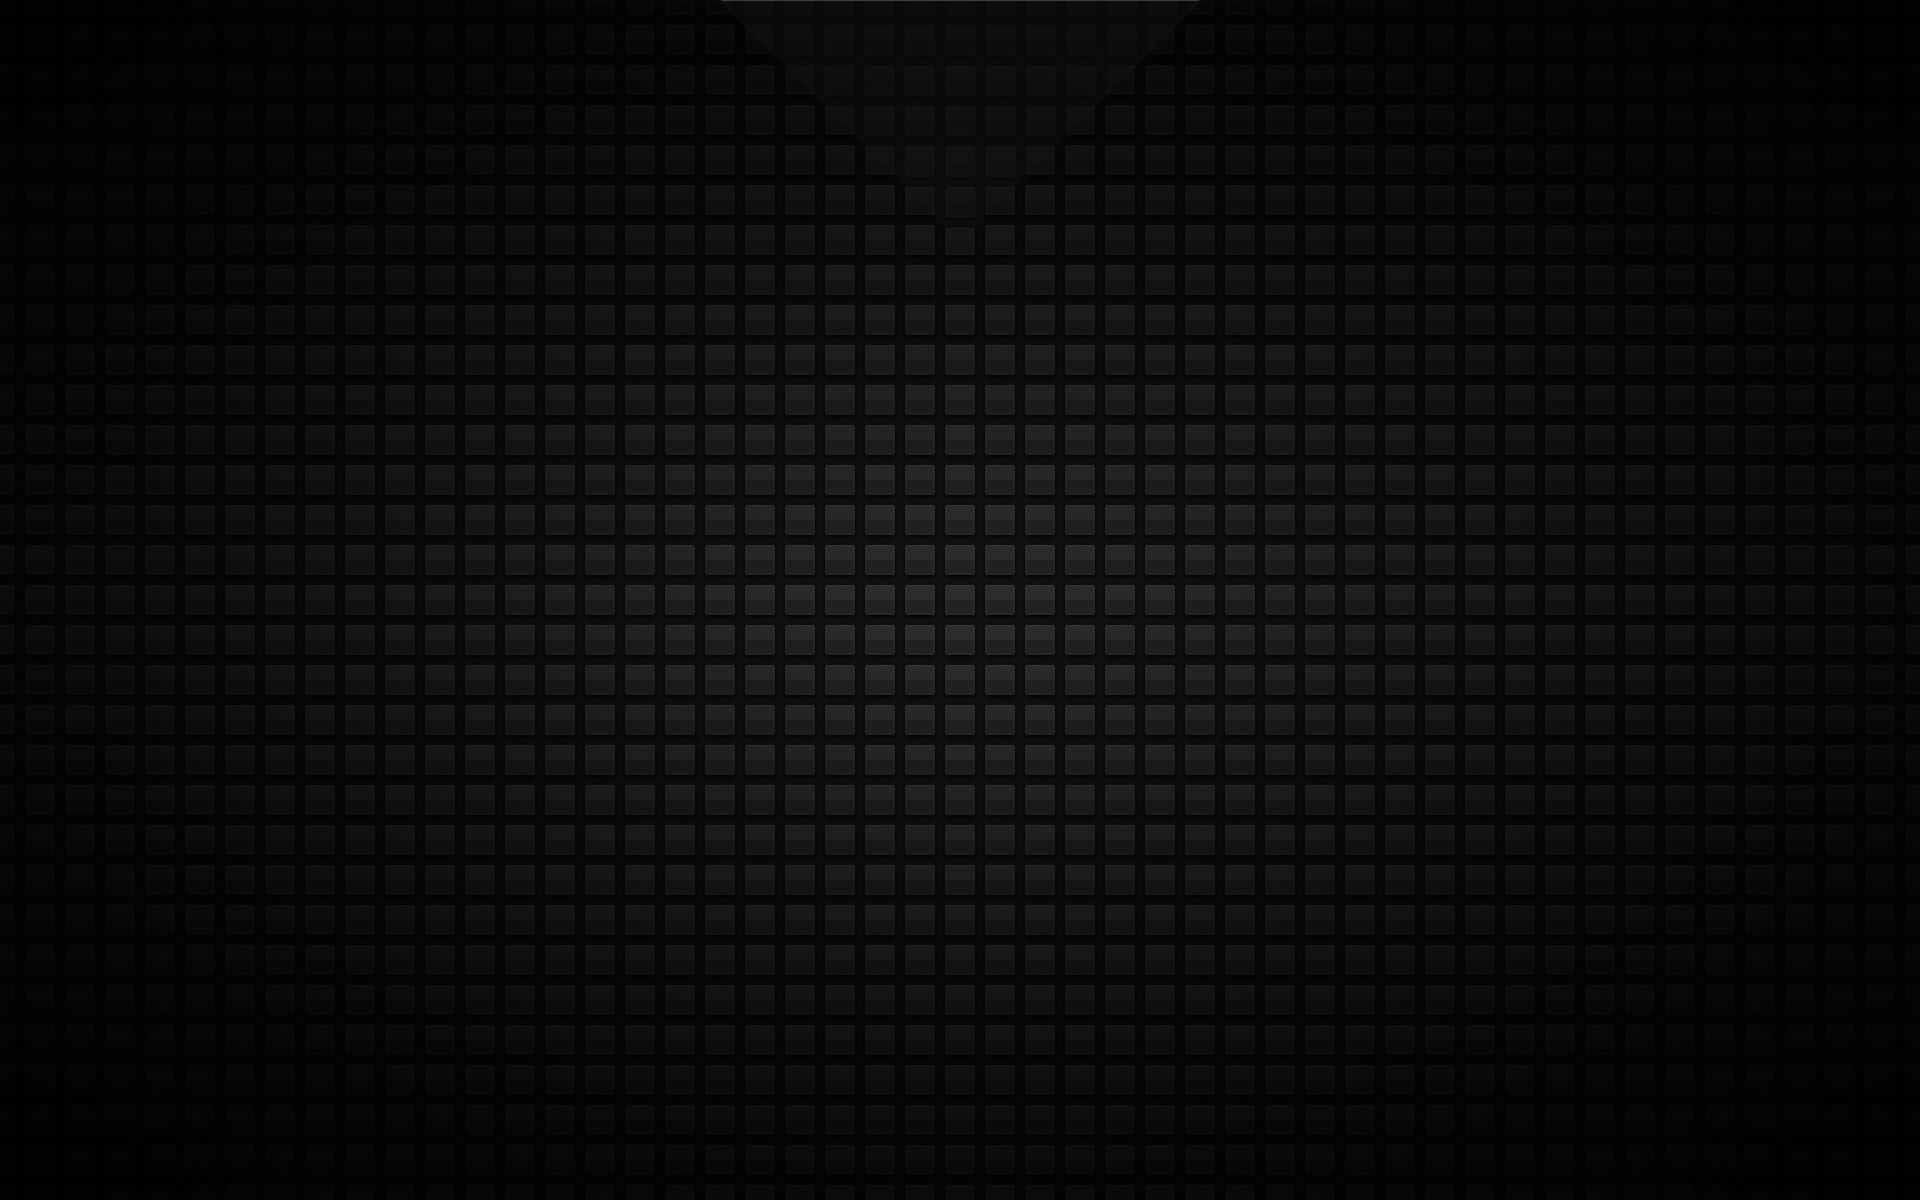 black wallpaper wallpaper pinterest black wallpaper